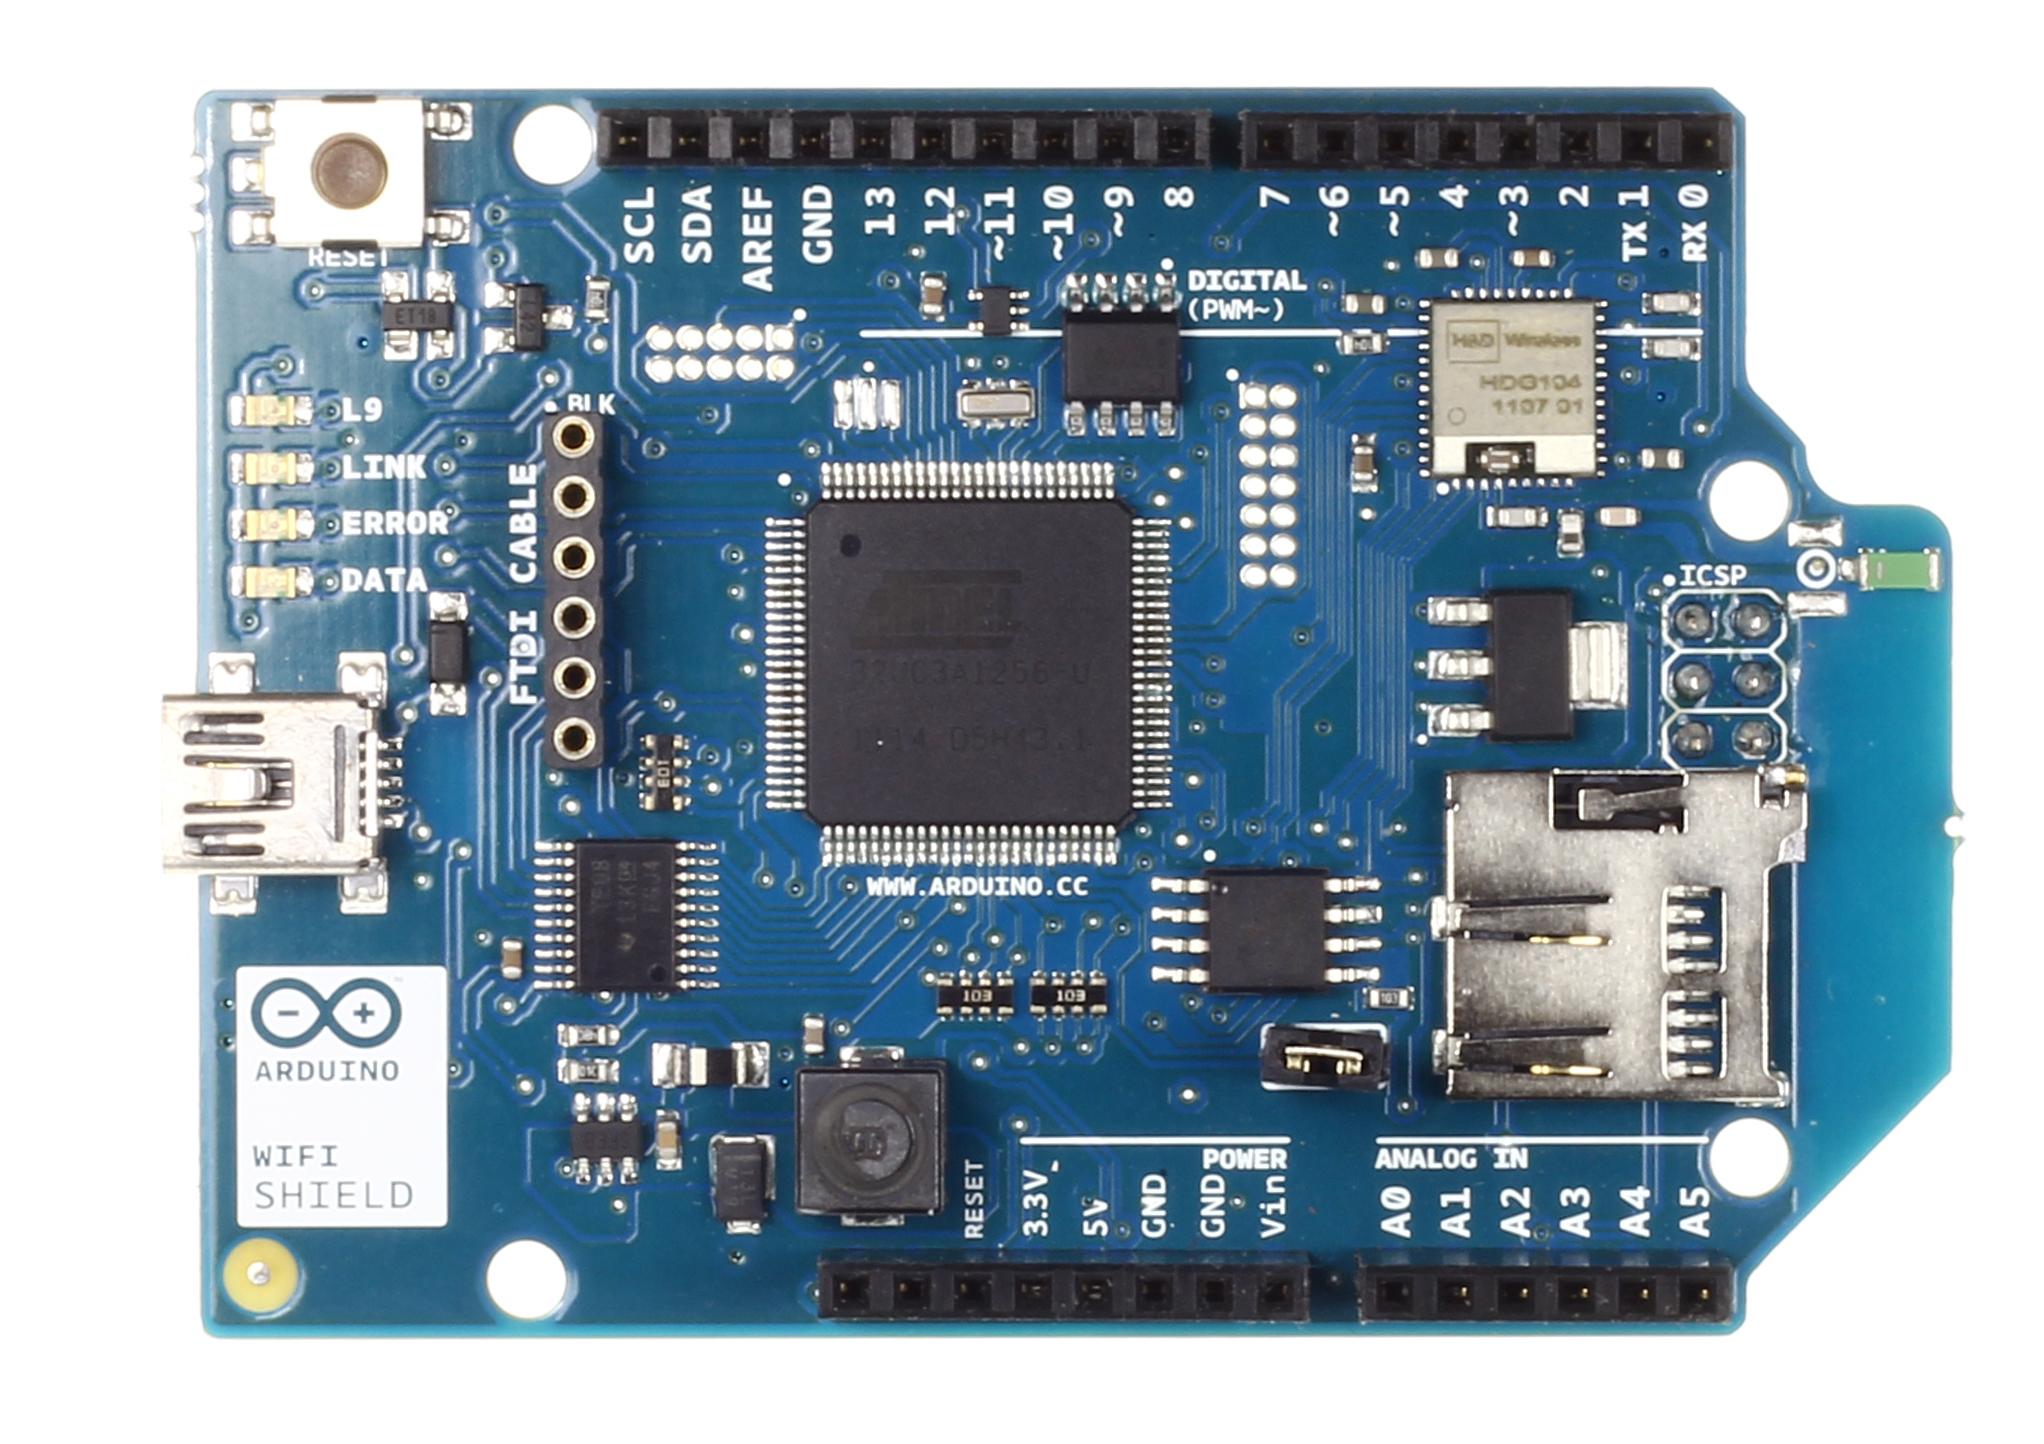 The 21st Century Digital Home Why Are Arduino Wifi Shields Soooo Circuit Expensive